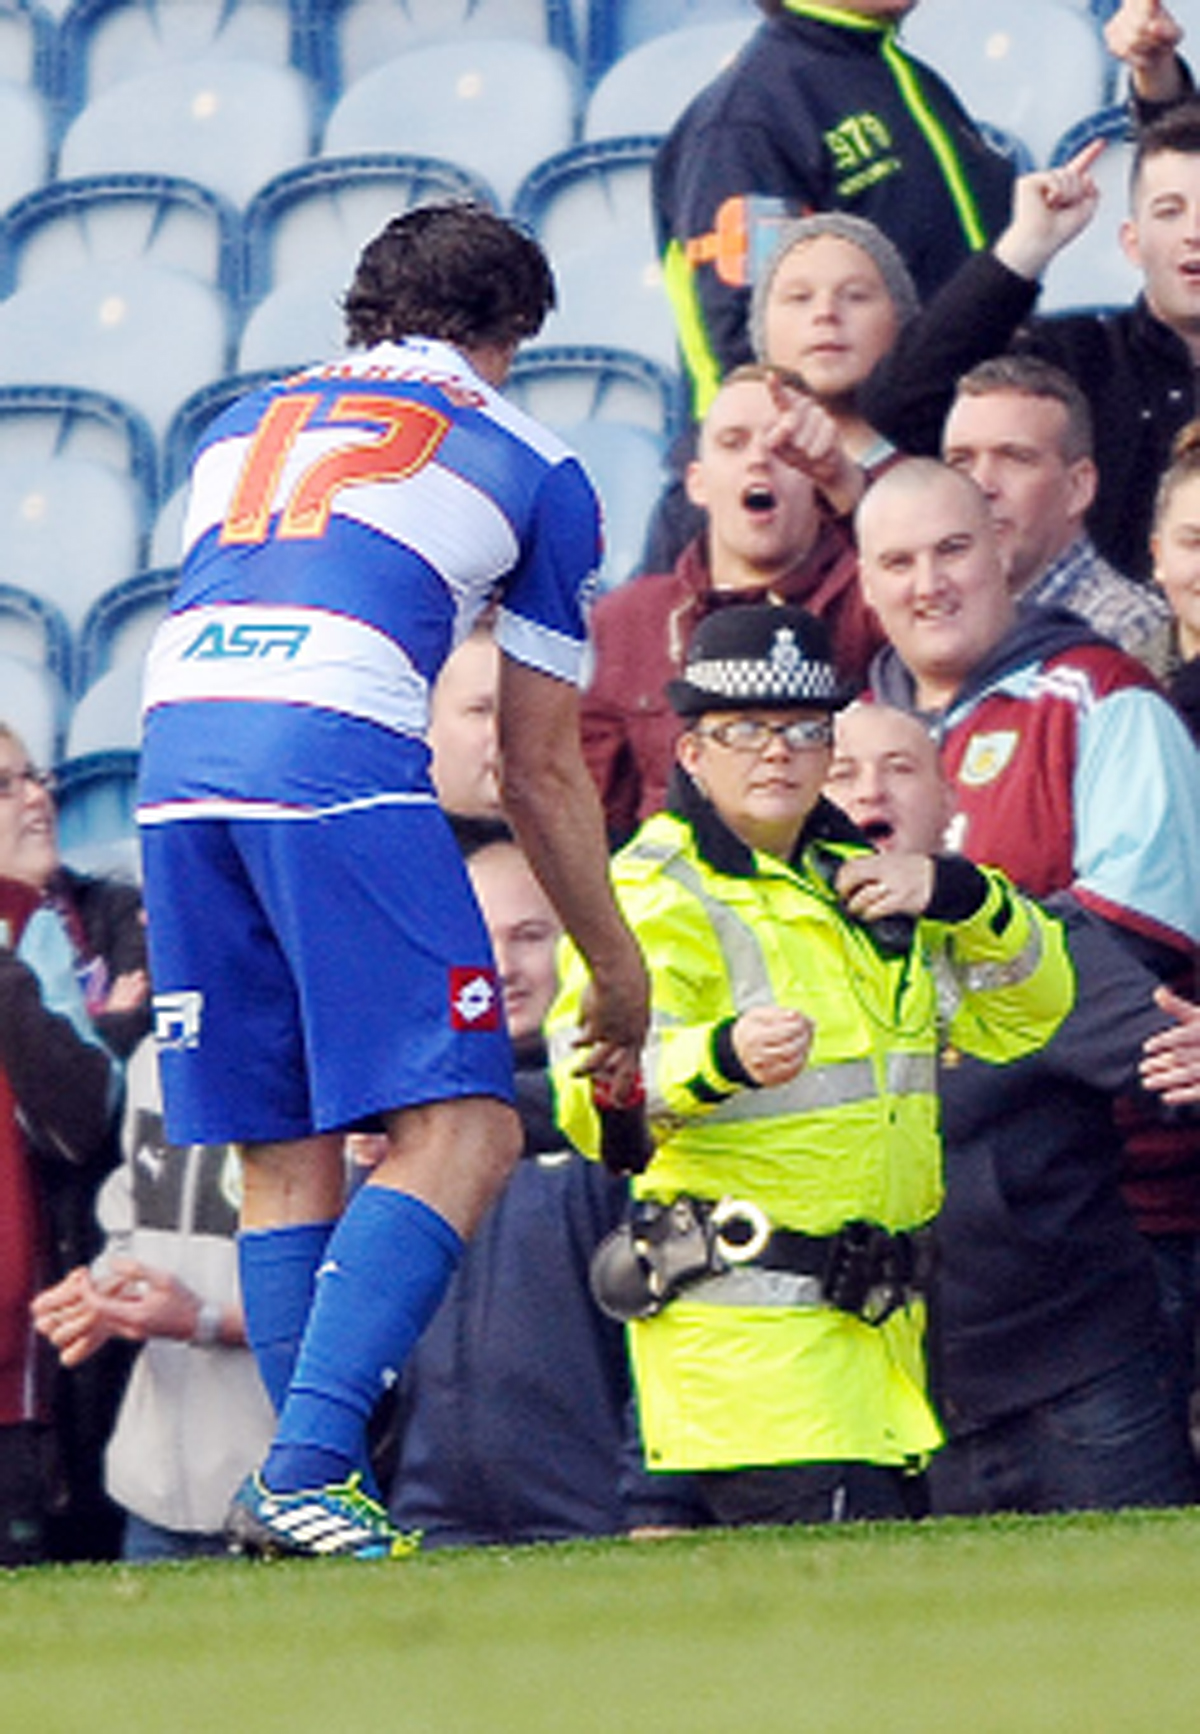 Burnley fan accused of throwing bottle at Joey Barton faces no further action